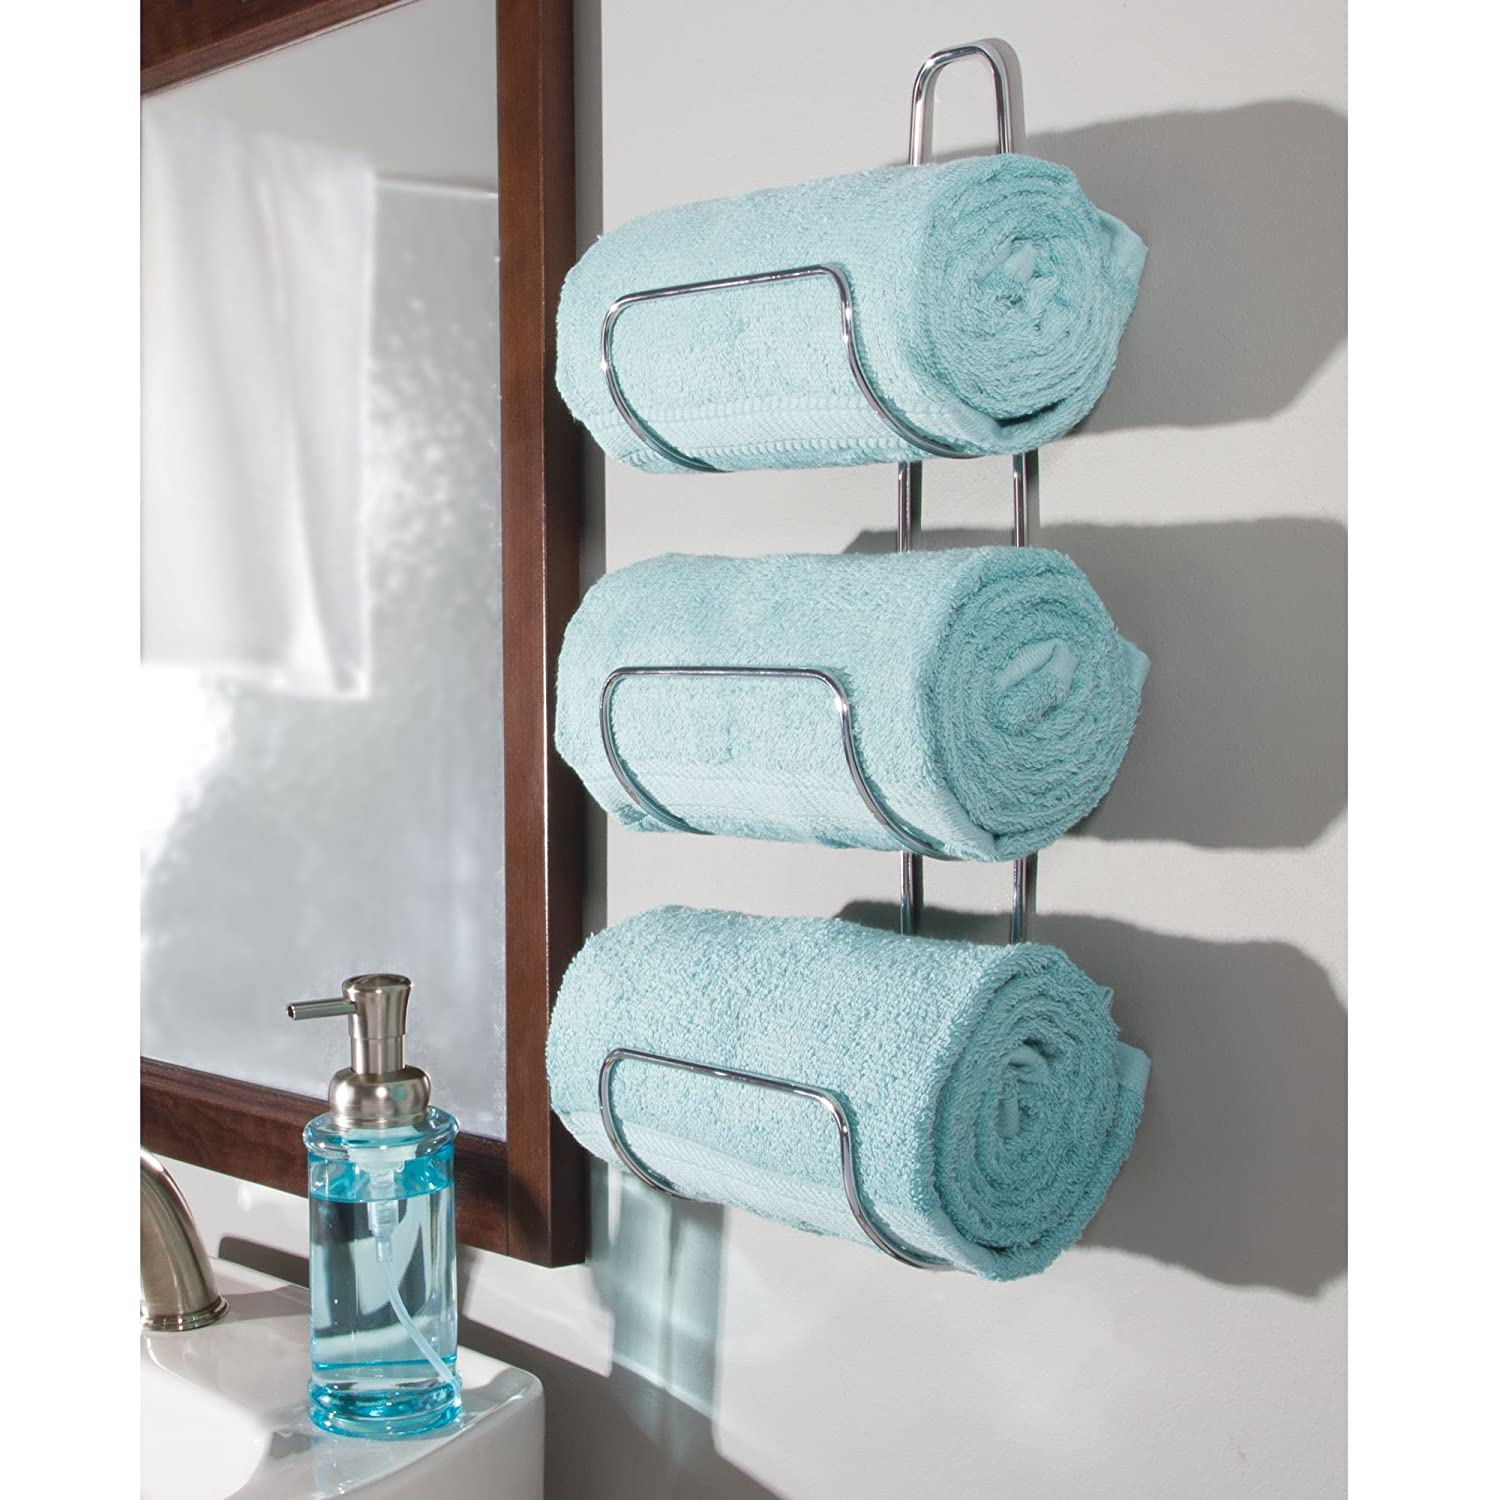 Amazon.com: mDesign Wall Mount or Over Door Bathroom Towel Holder ...